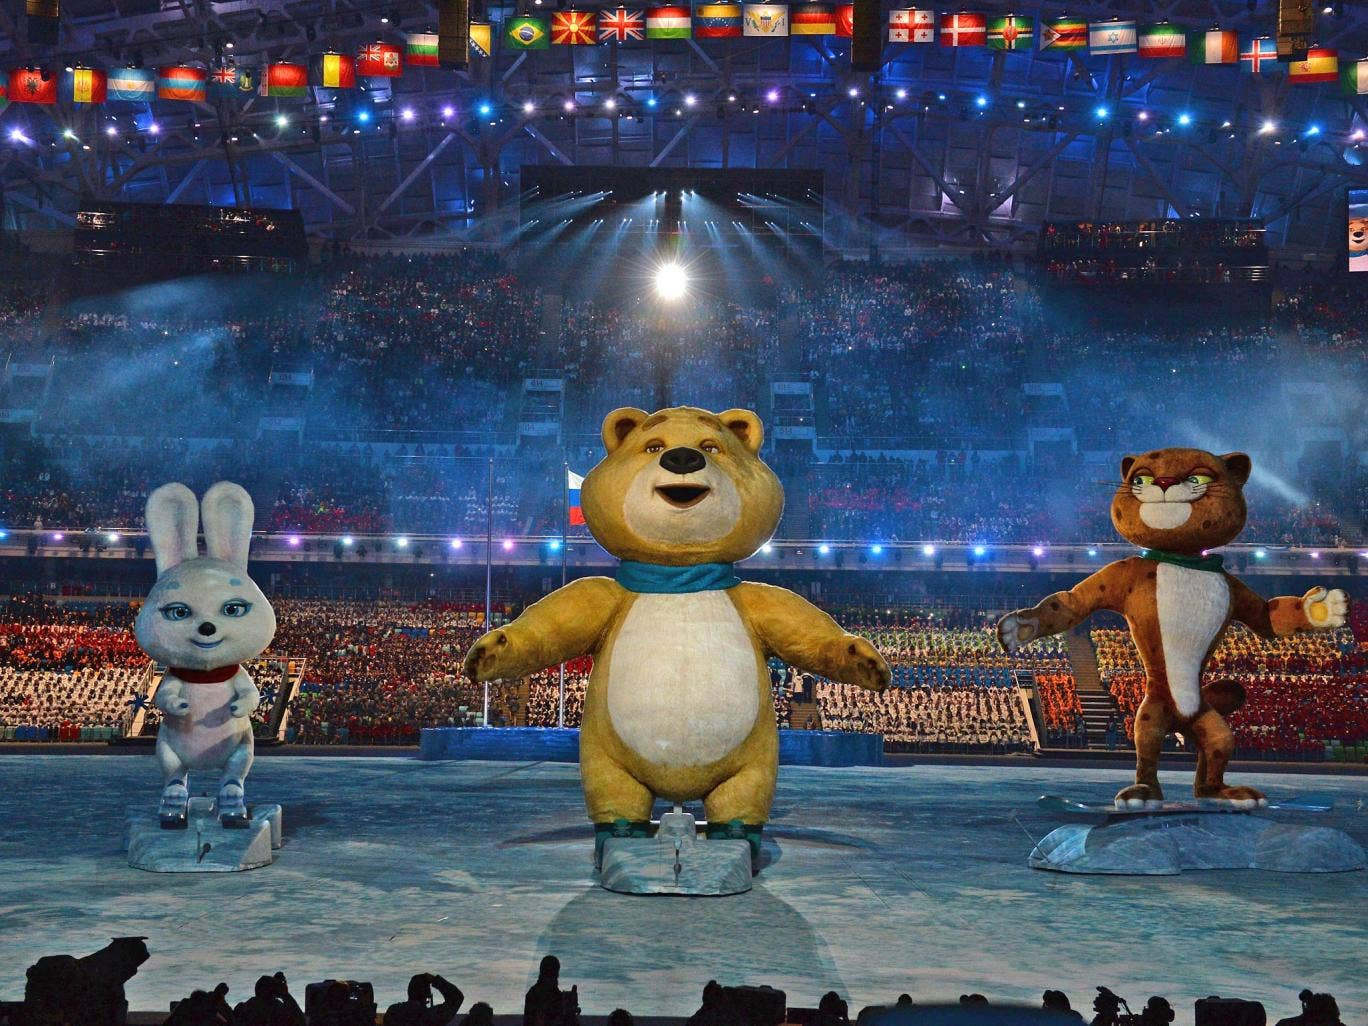 The Winter Olympic mascots the Hare, the Polar Bear and the Leopard loom large above the arena